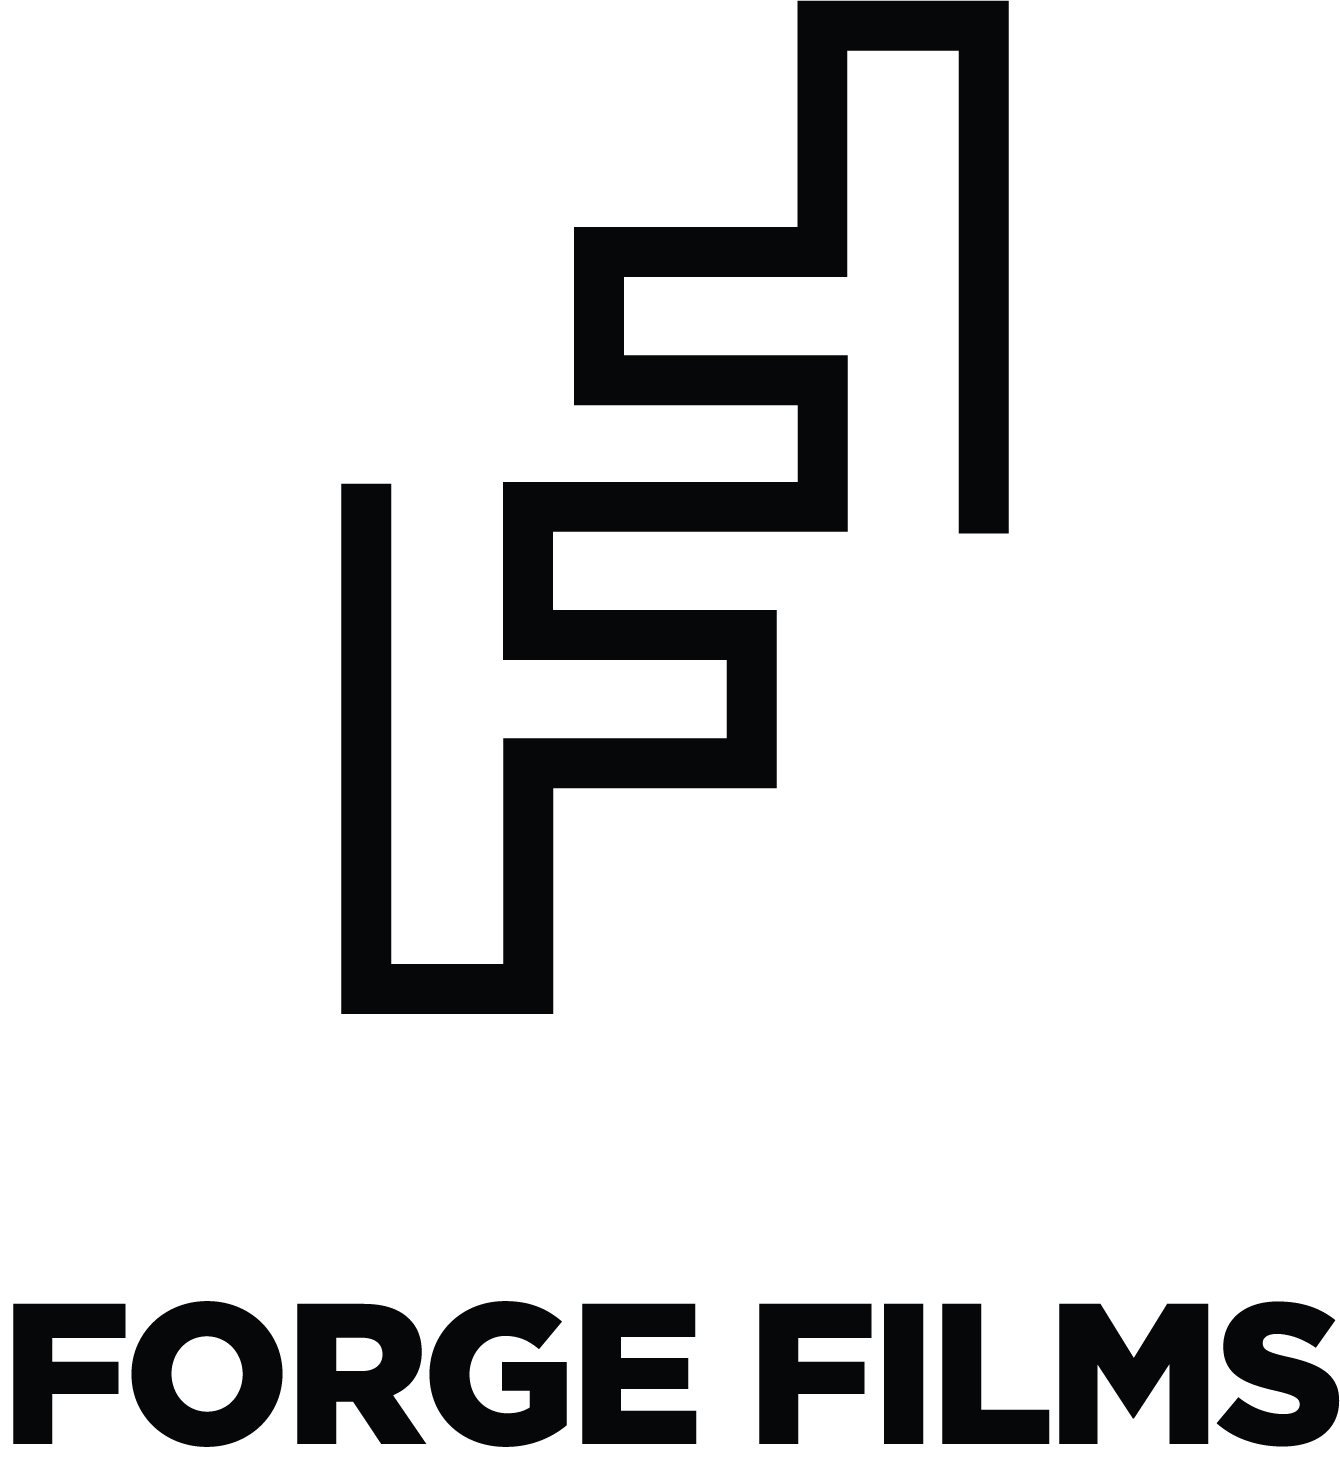 FORGE COMMERCIAL FILM PRODUCTION